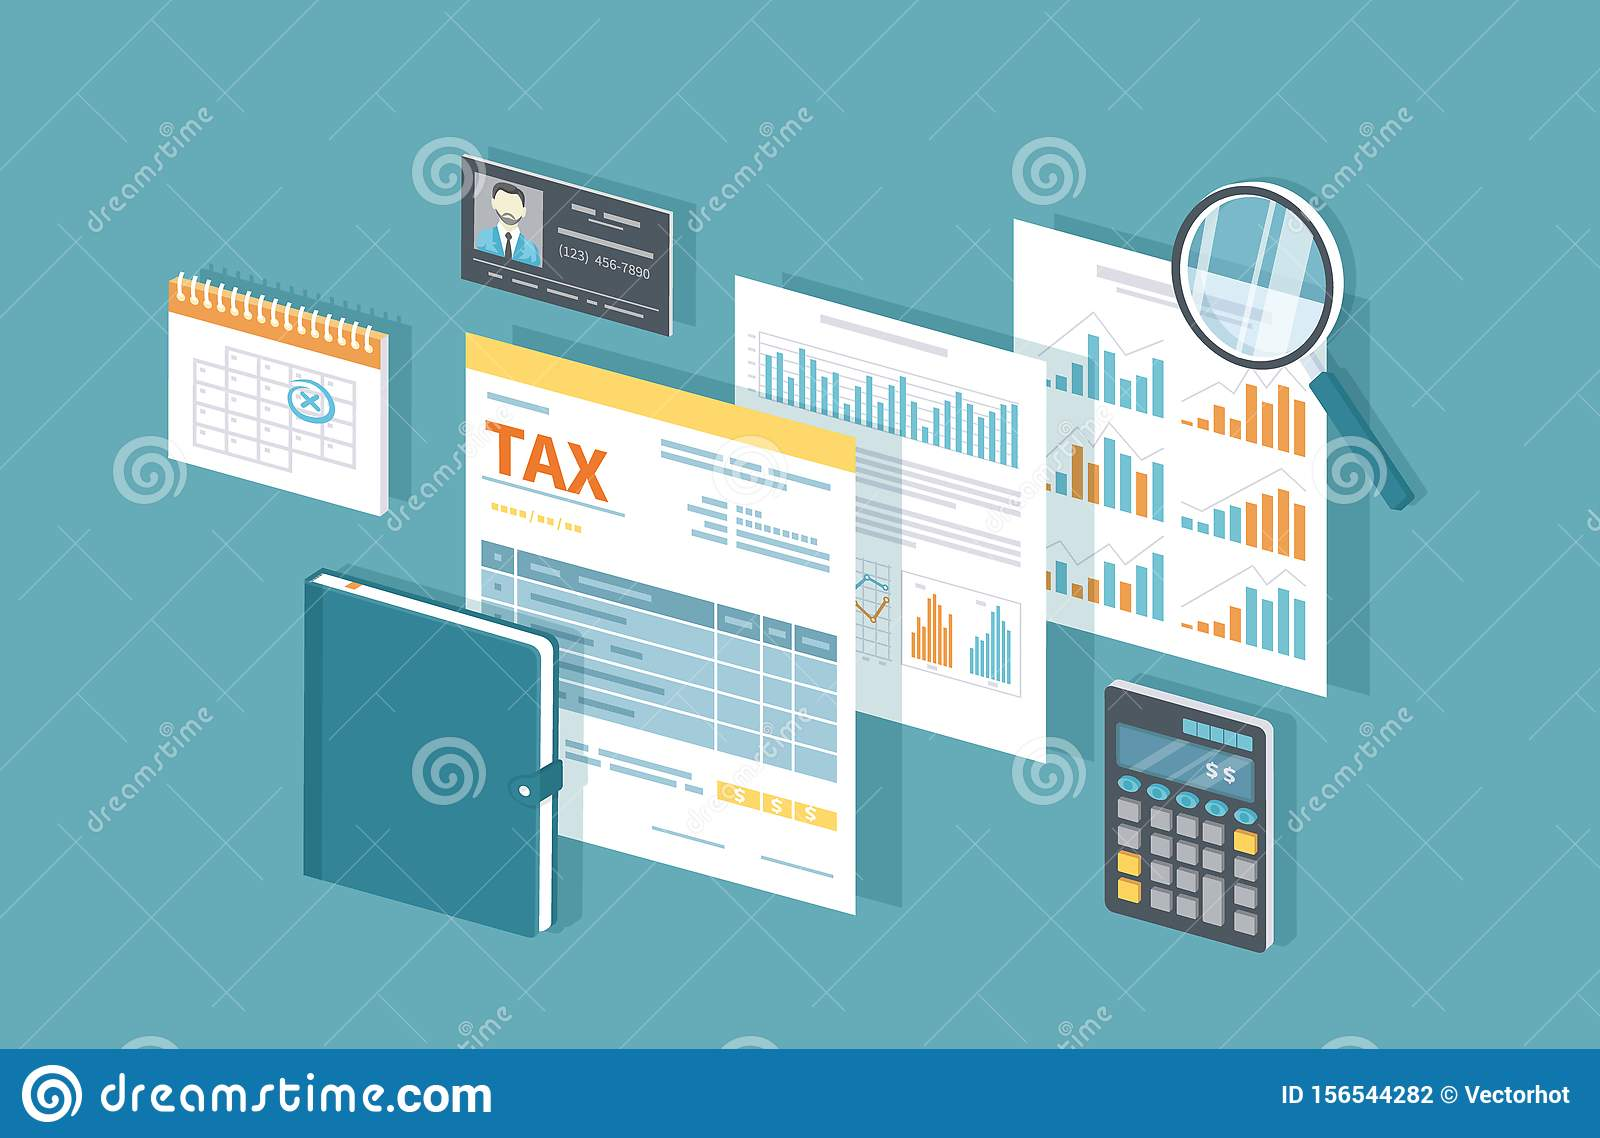 Essay on tax payment